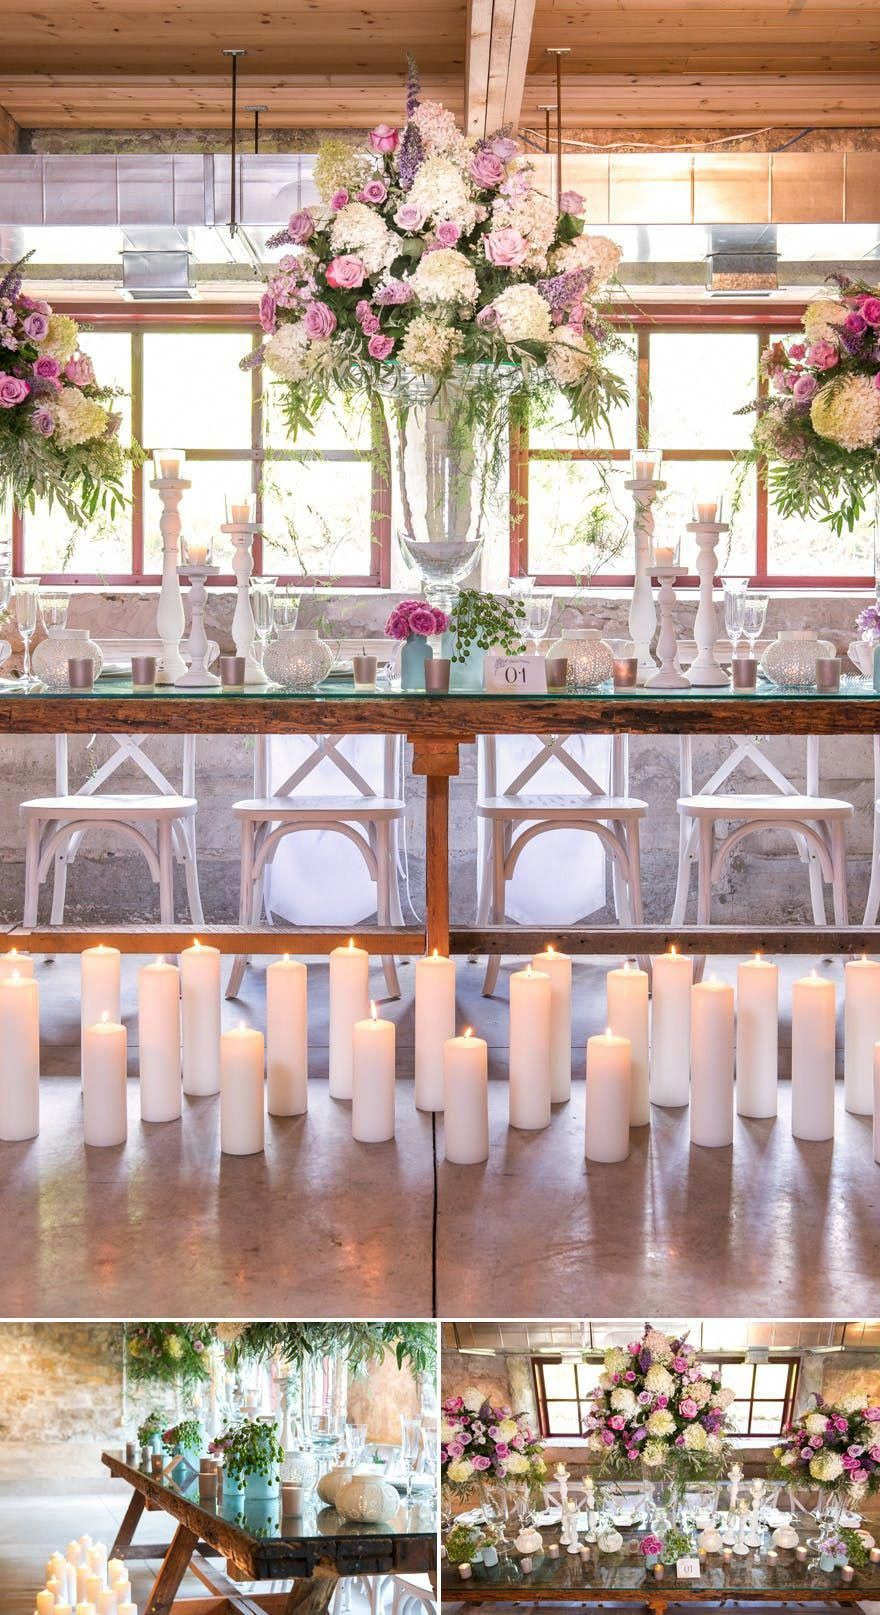 Bohemian wedding decor with glass vases and big floral